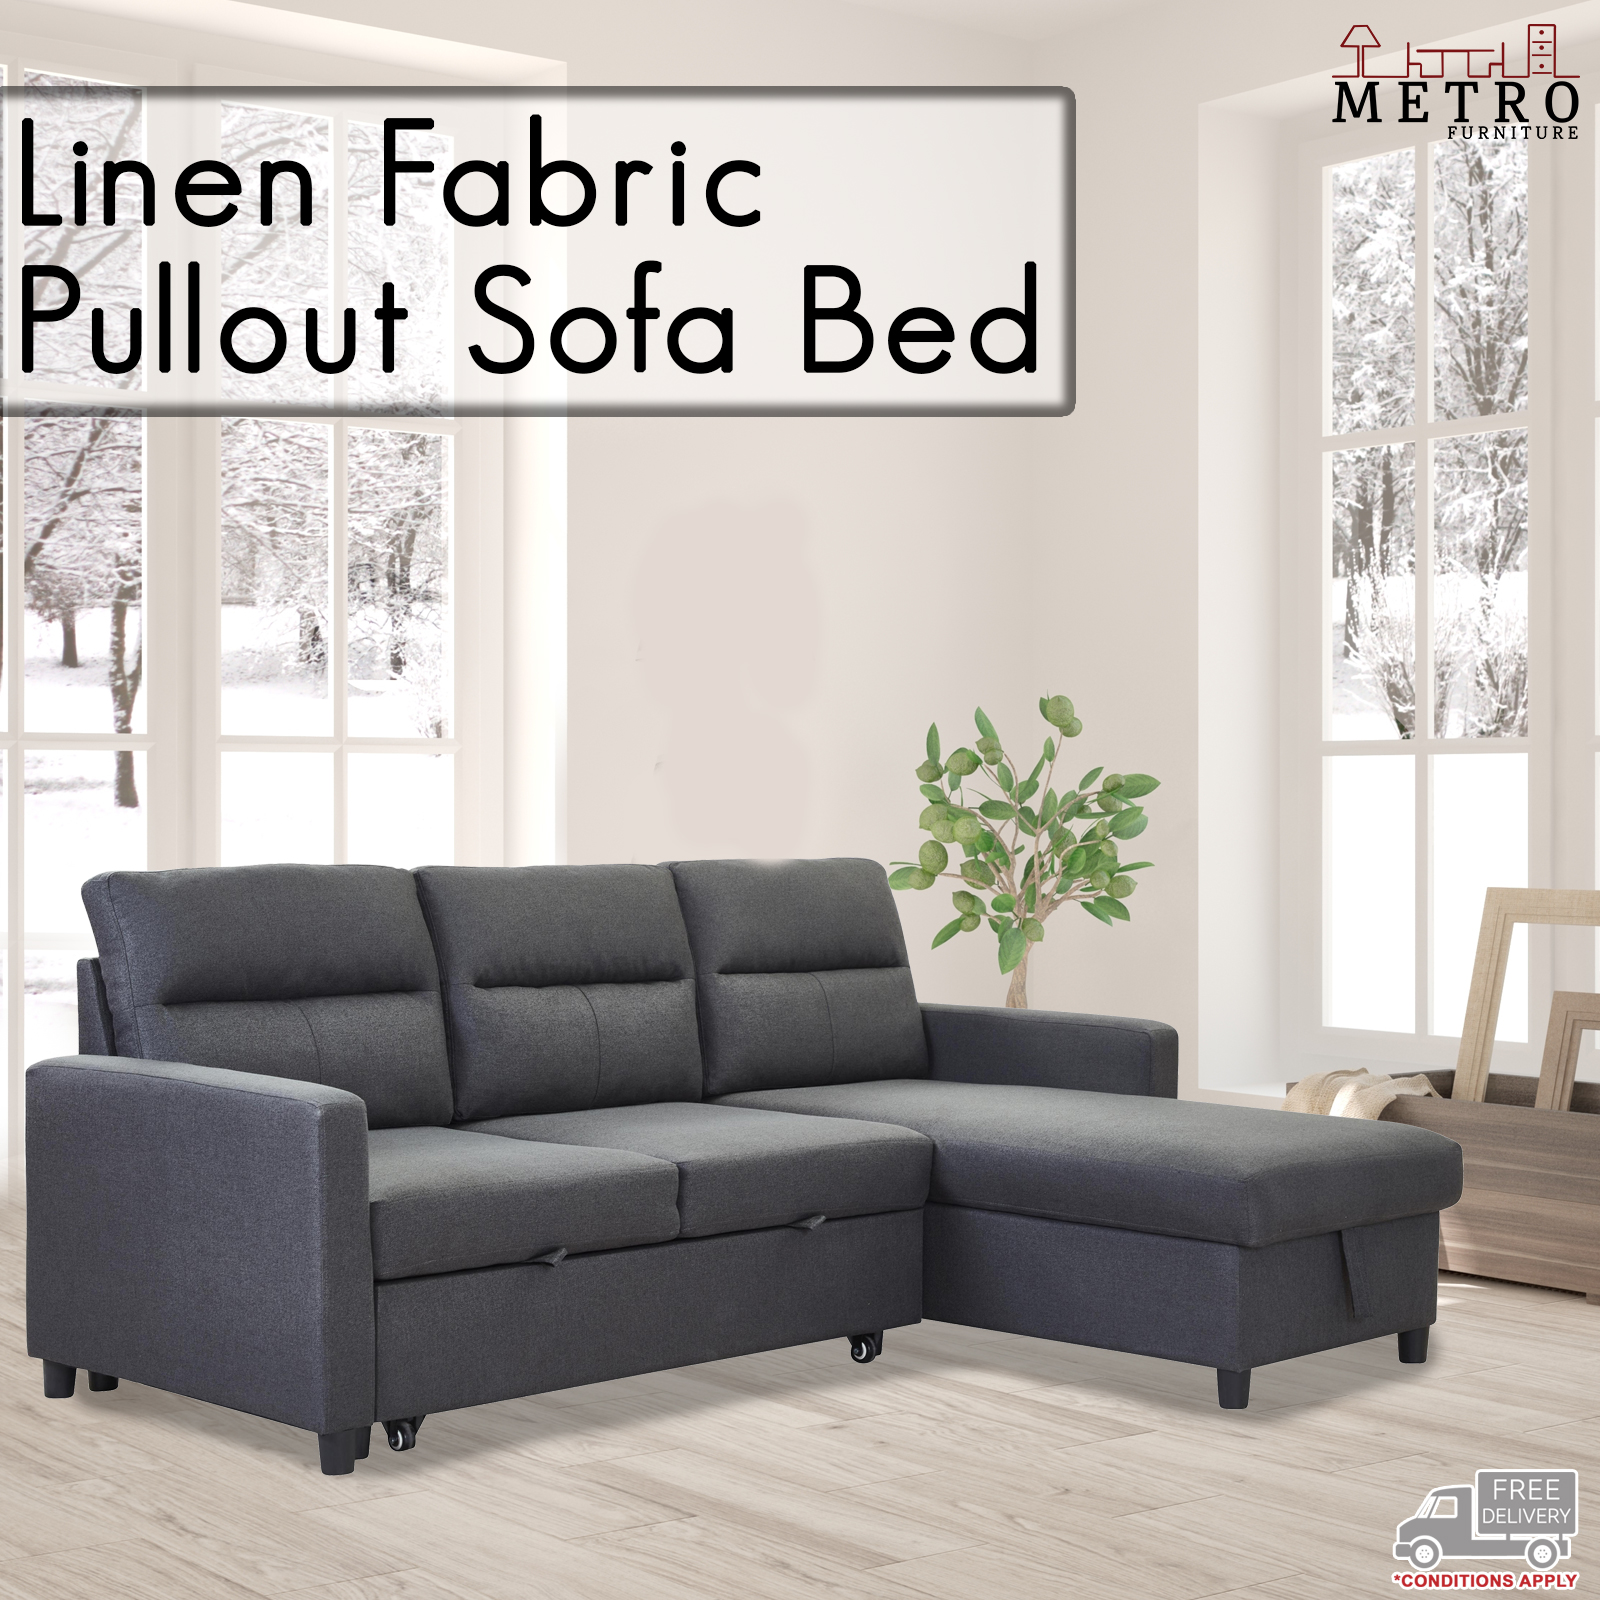 New 3 Seater Linen Fabric Pullout Sofa Bed With Chaise Grey Charcoal Color Ebay